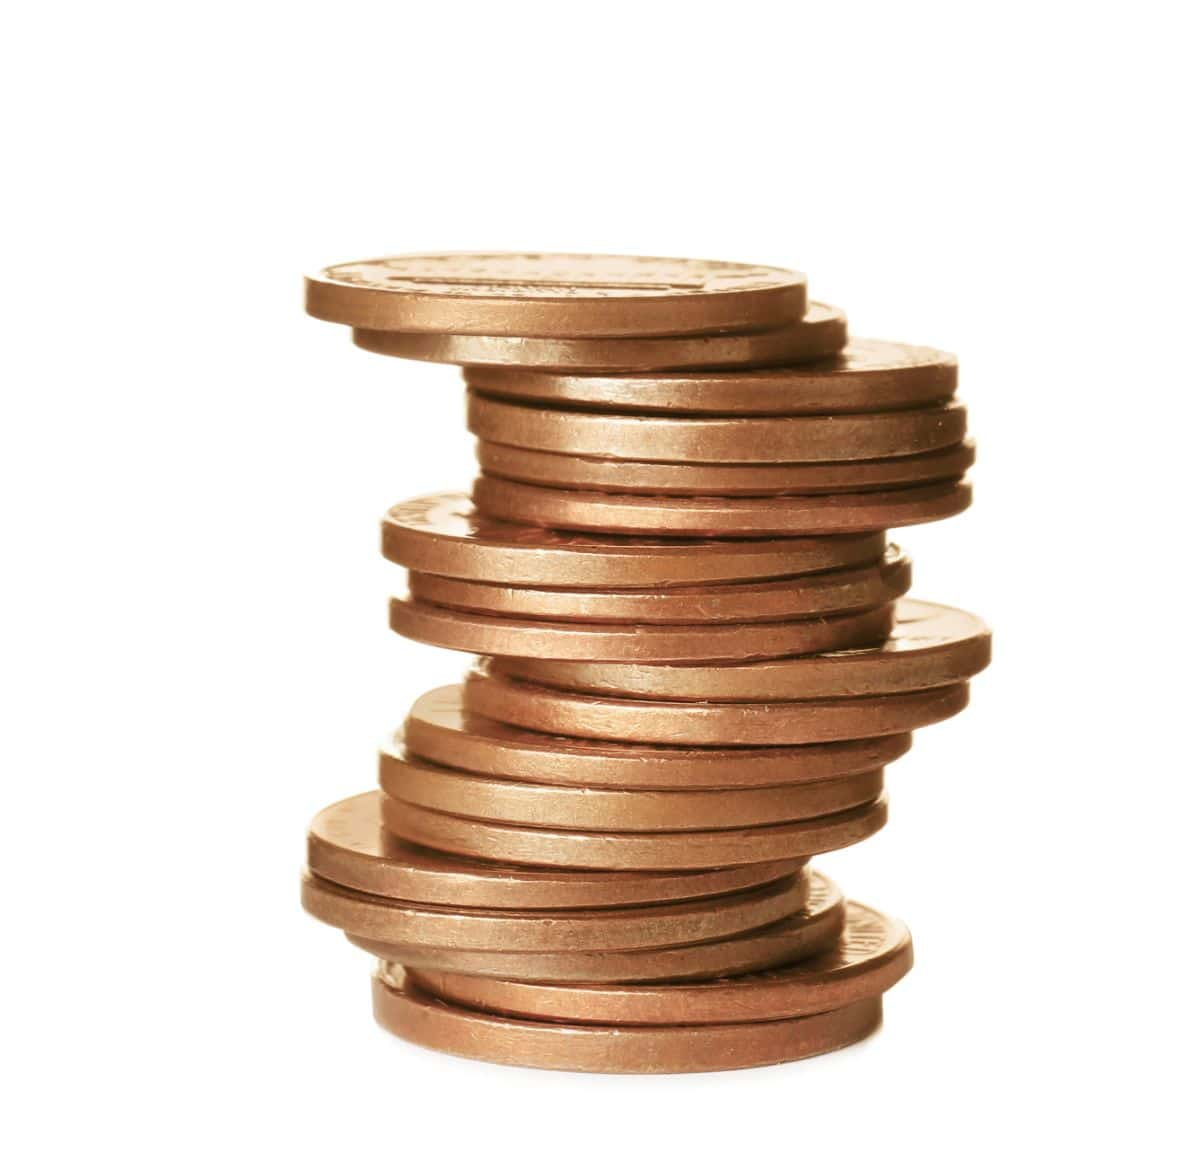 a stack of copper coins on a white background